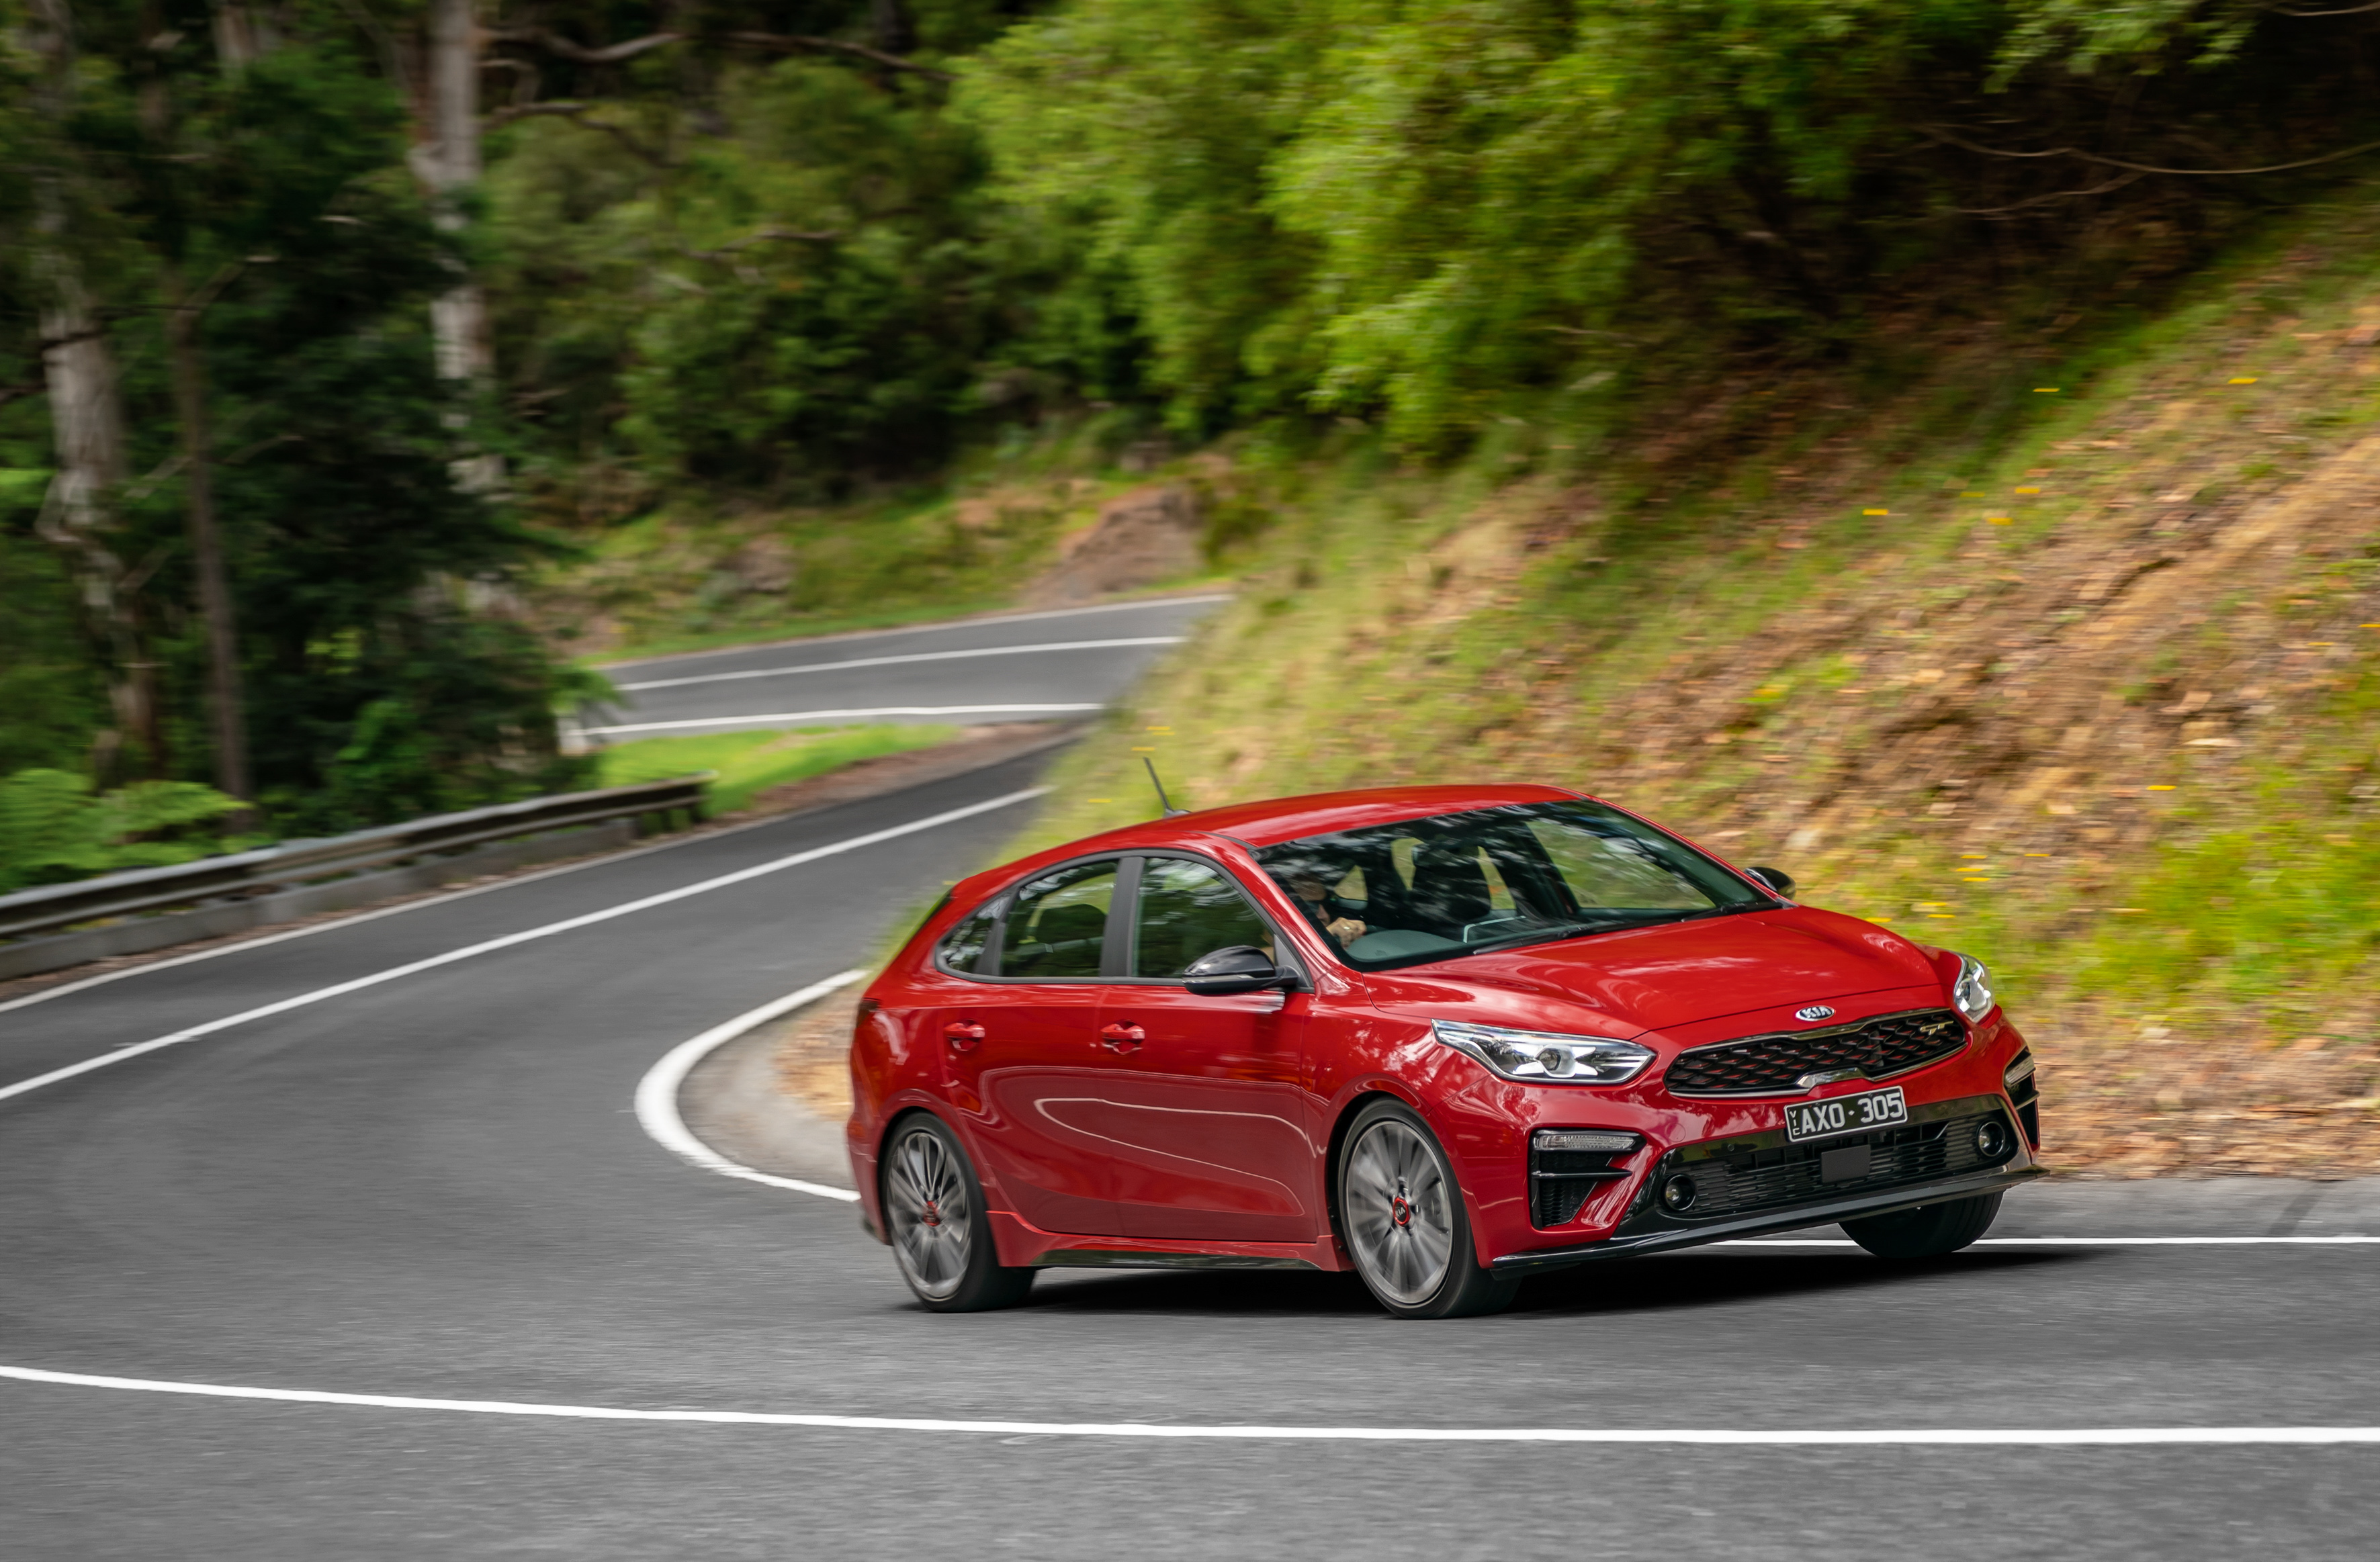 Kia Cerato GT hatch – subtle performance uplift for a strong selling five-door hatch.